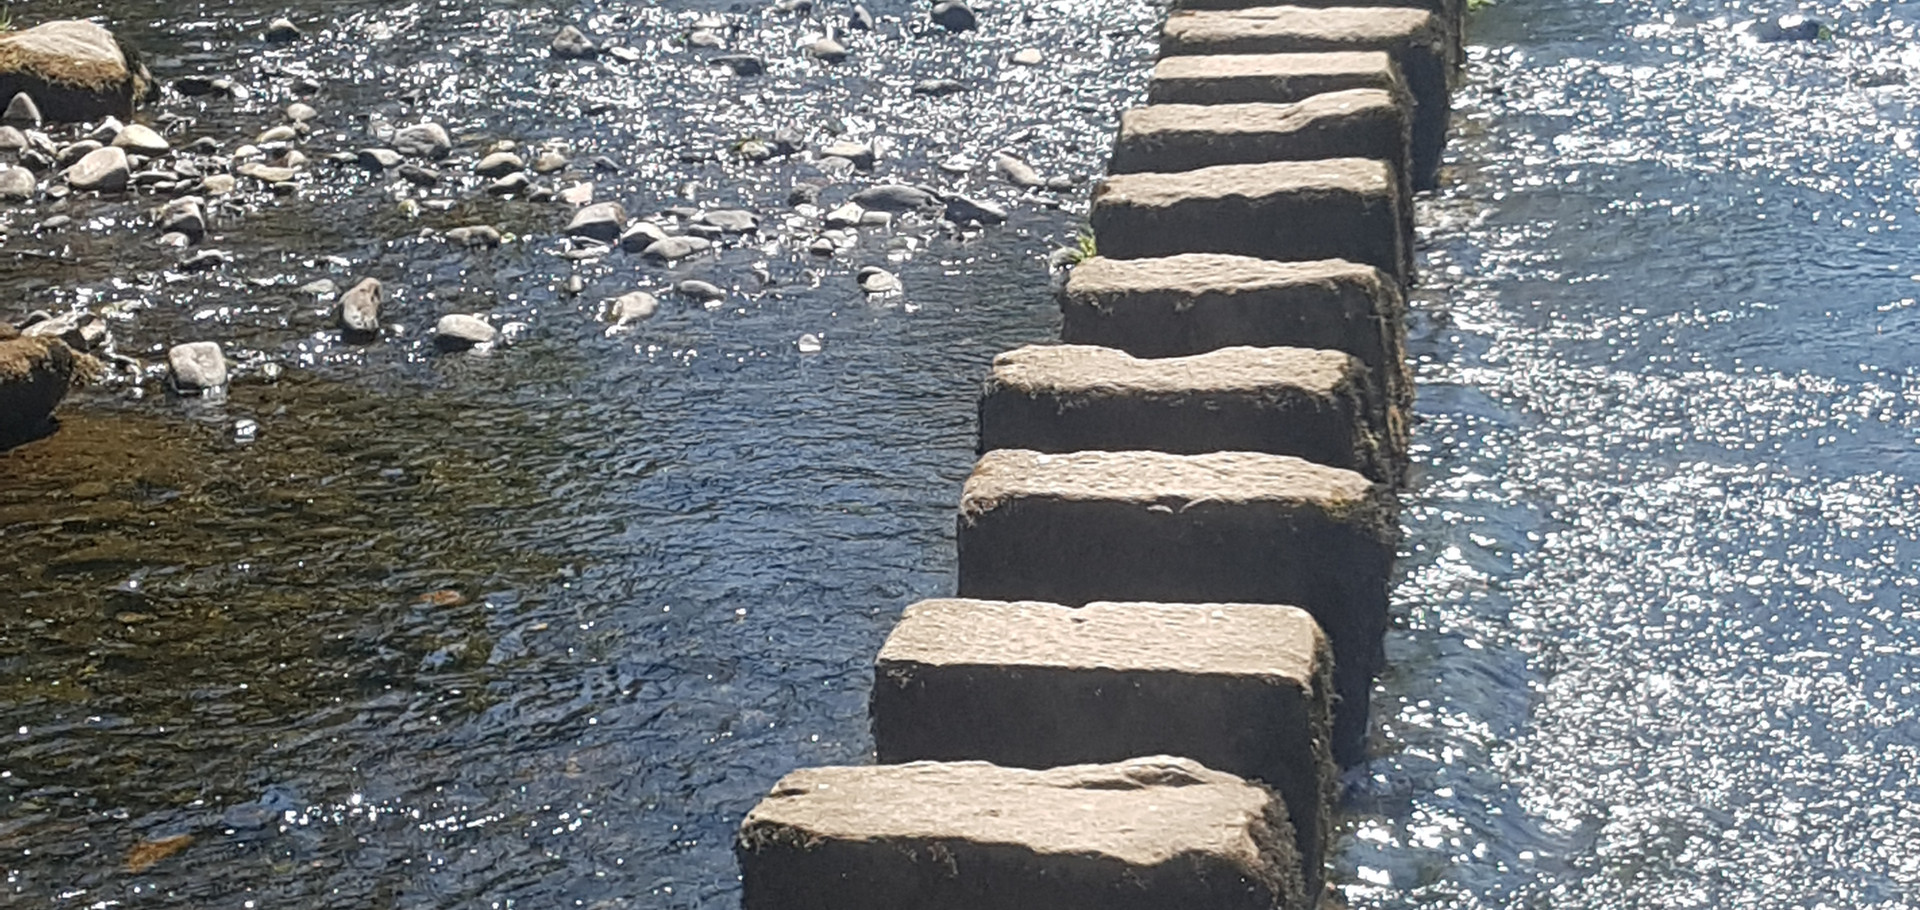 The stepping stones